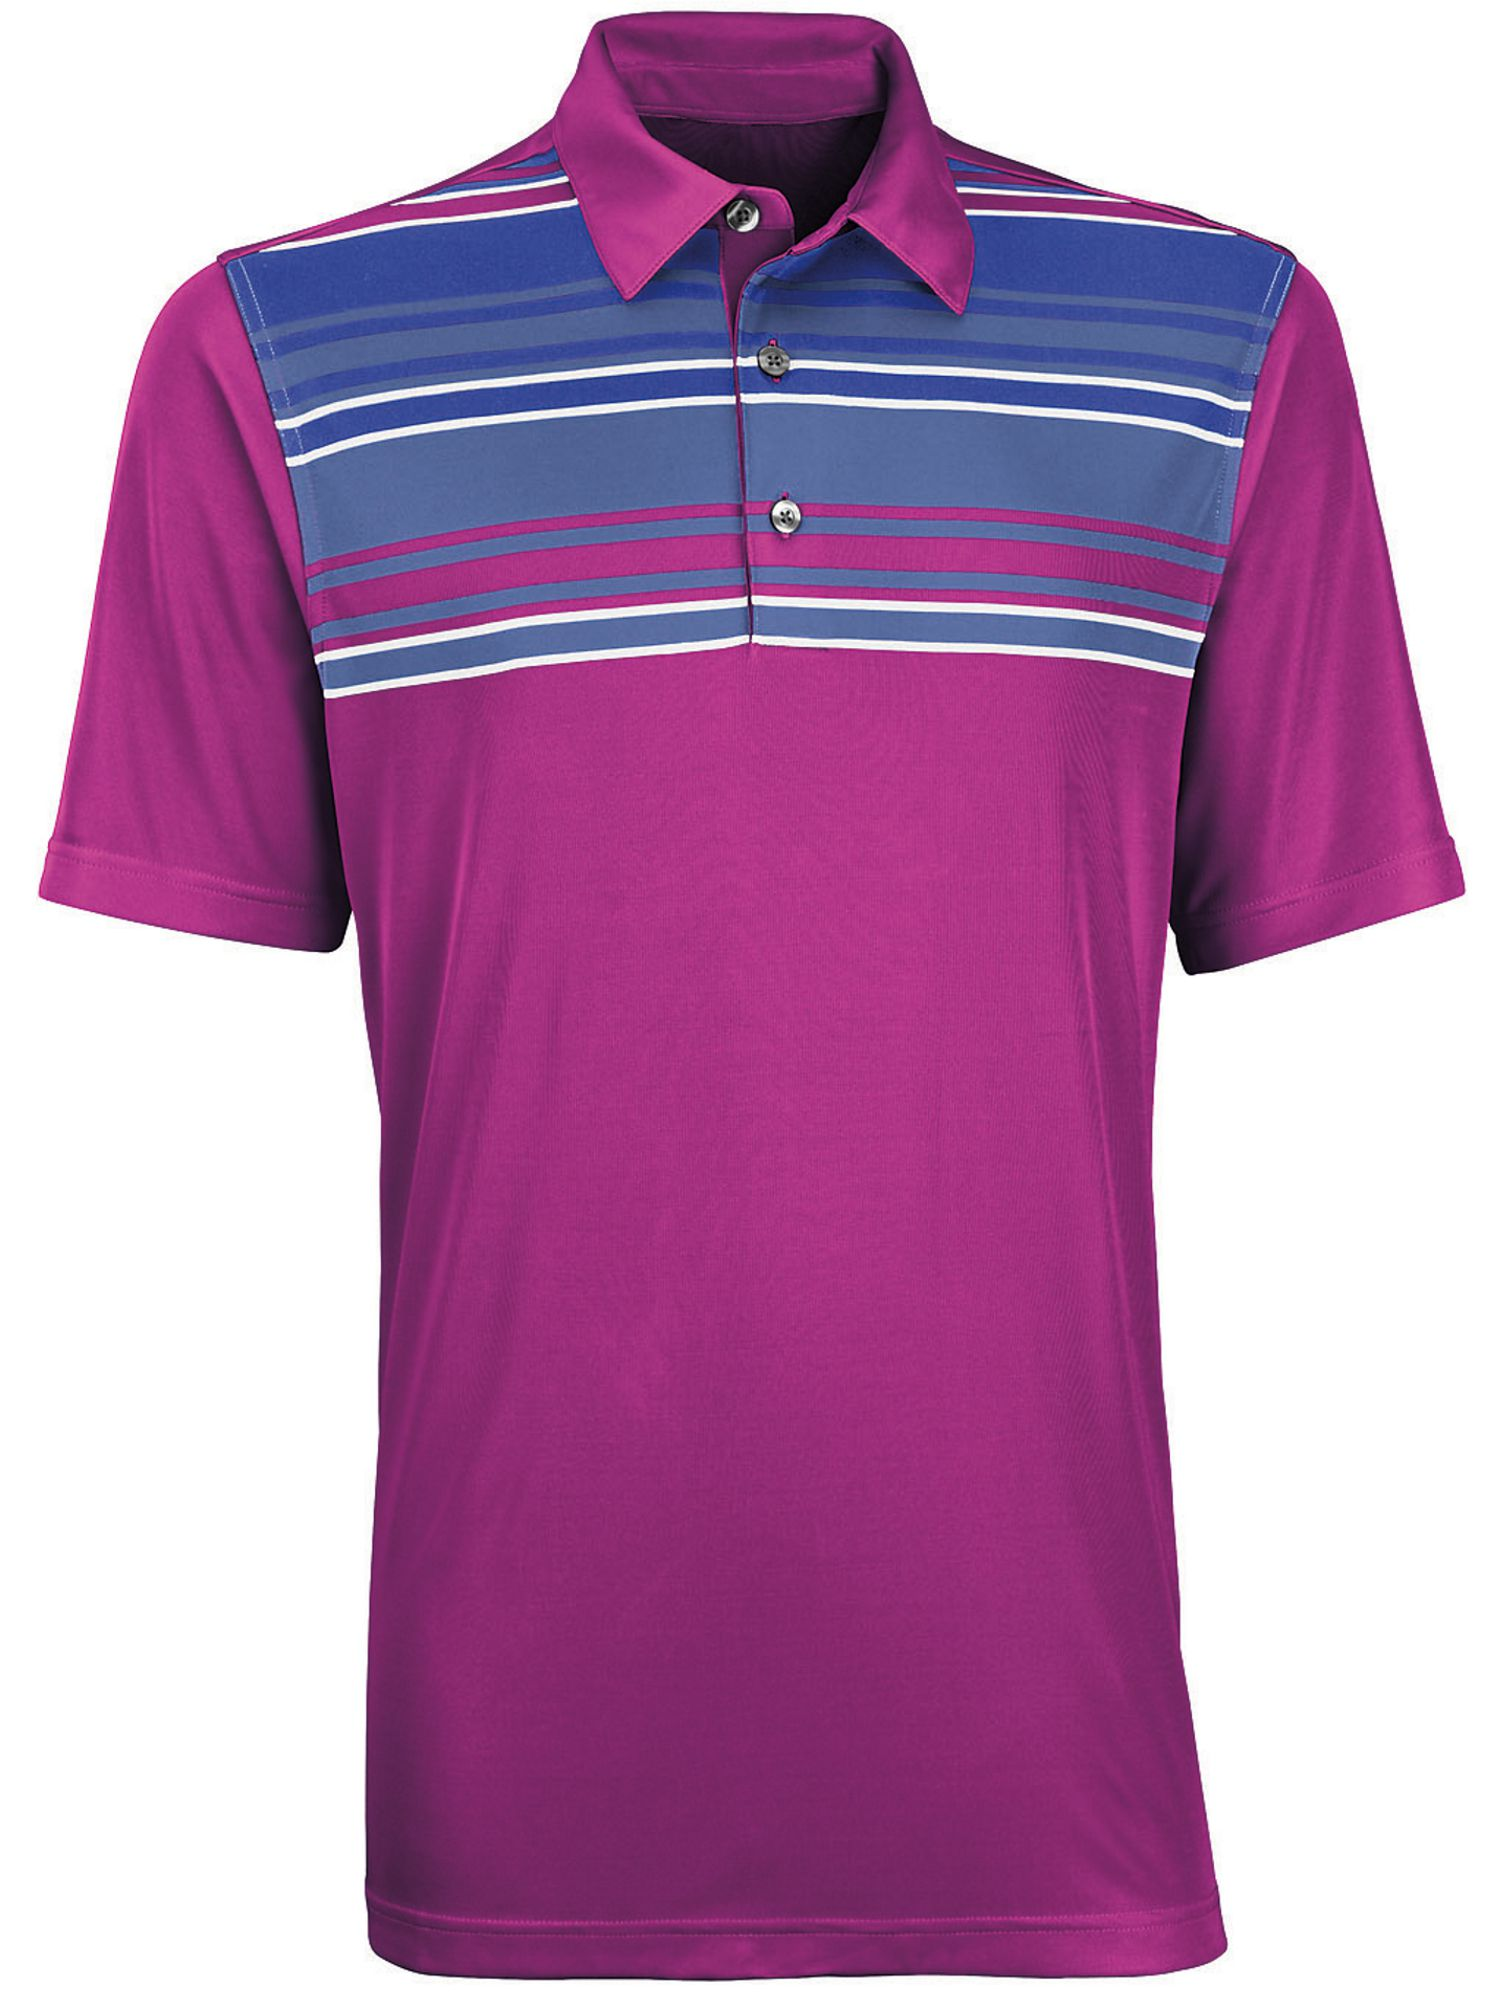 Performance front panel engineer golf shirt